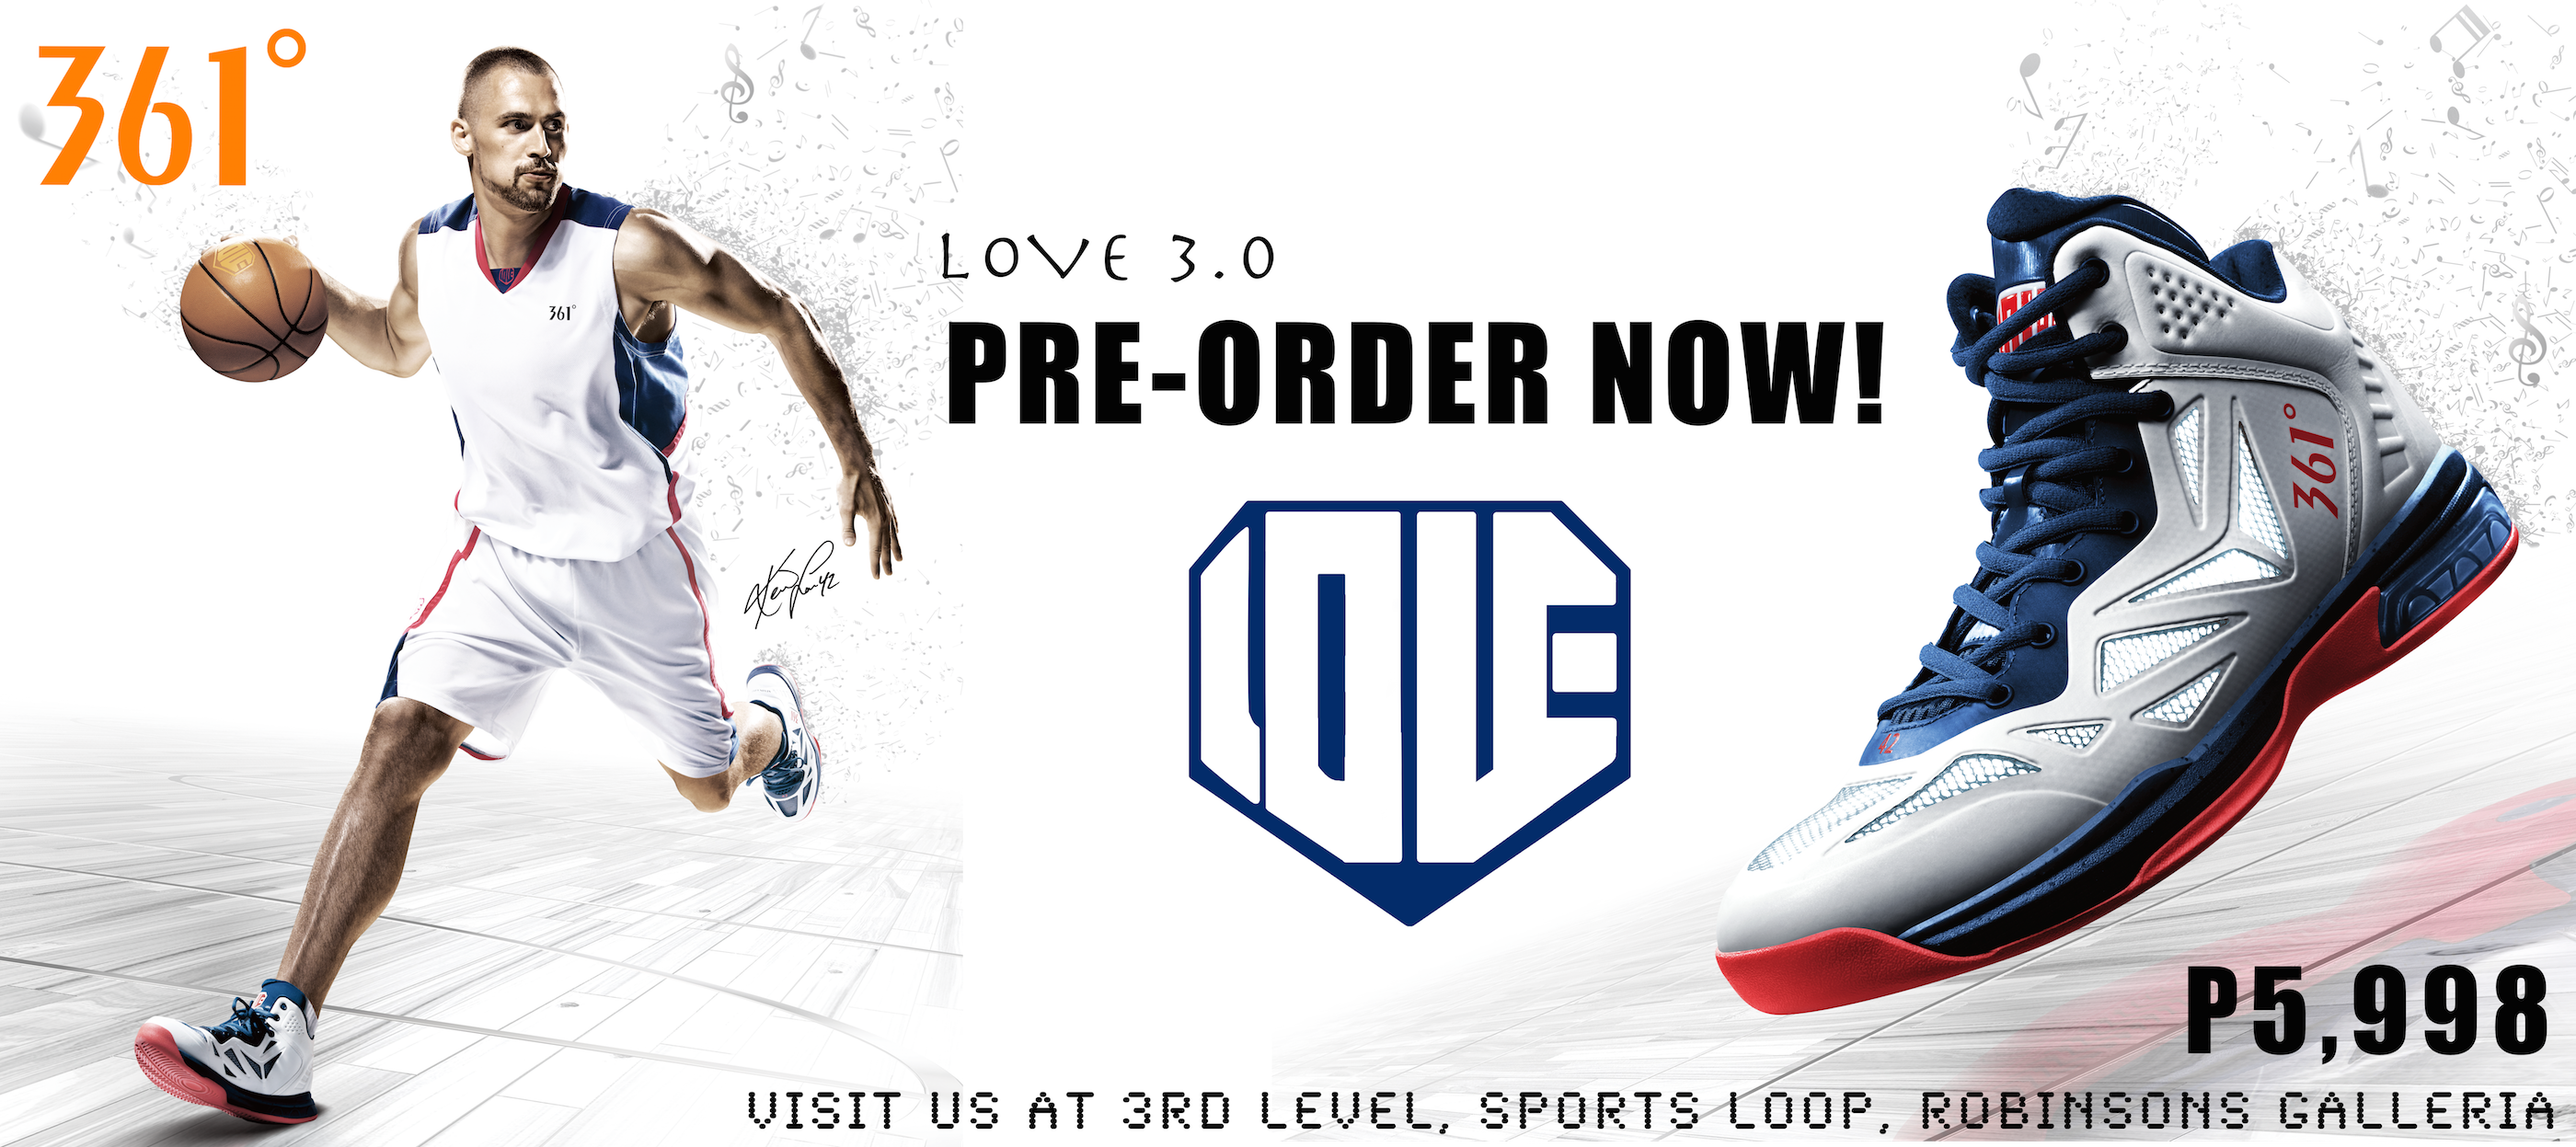 361 Degrees signature shoes, Love 3.0